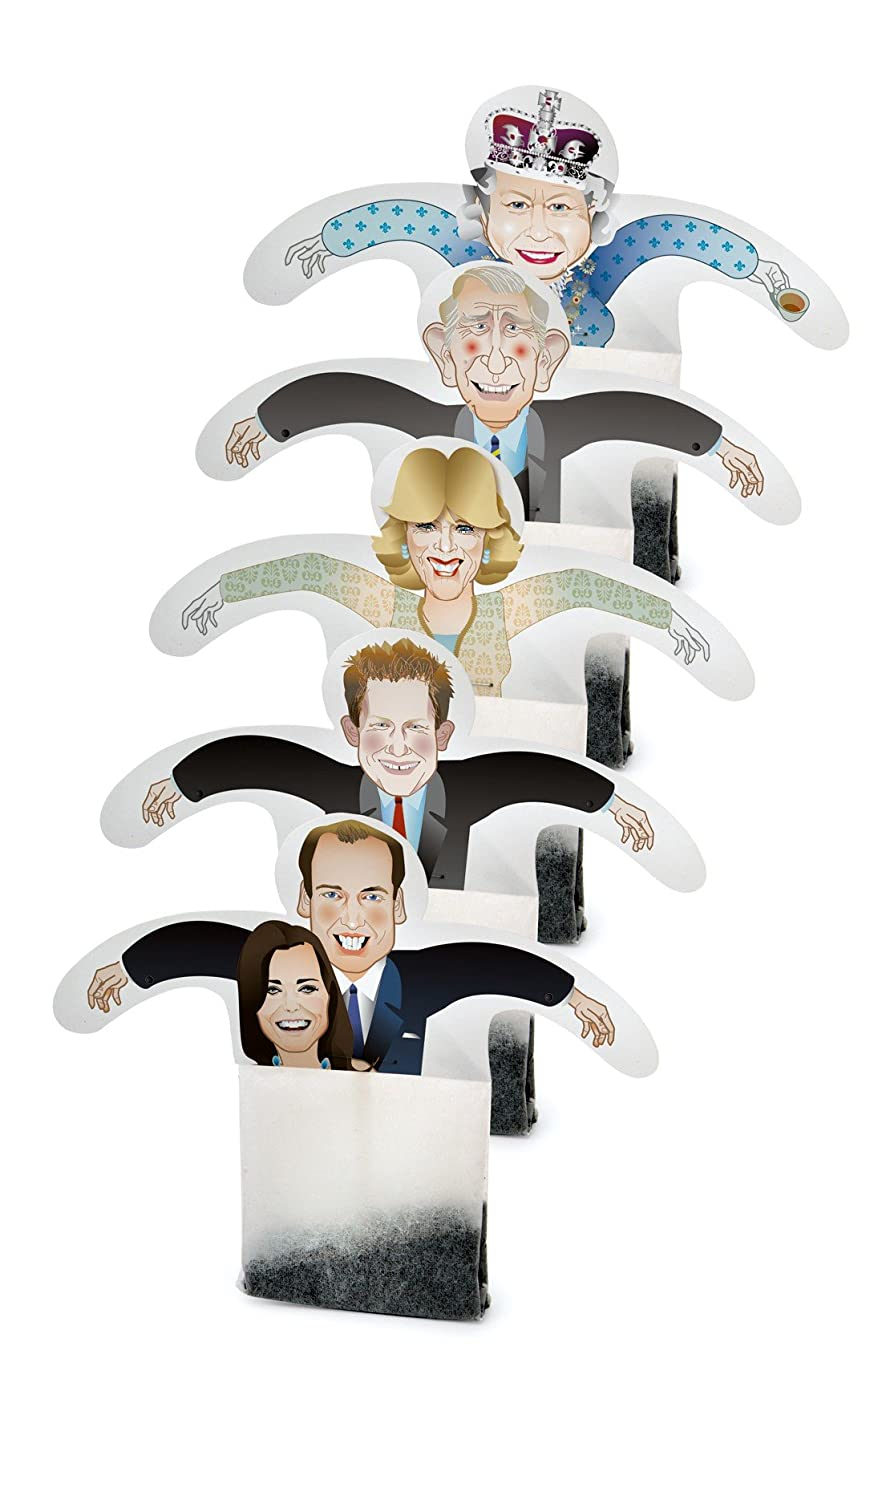 B002K5VL3S RoyalTea Royalty Tea Bags Gift Set with the Royal Wedding Family Figures, Prince William, Charles, Queen 71676Lgvu0L._SL1500_